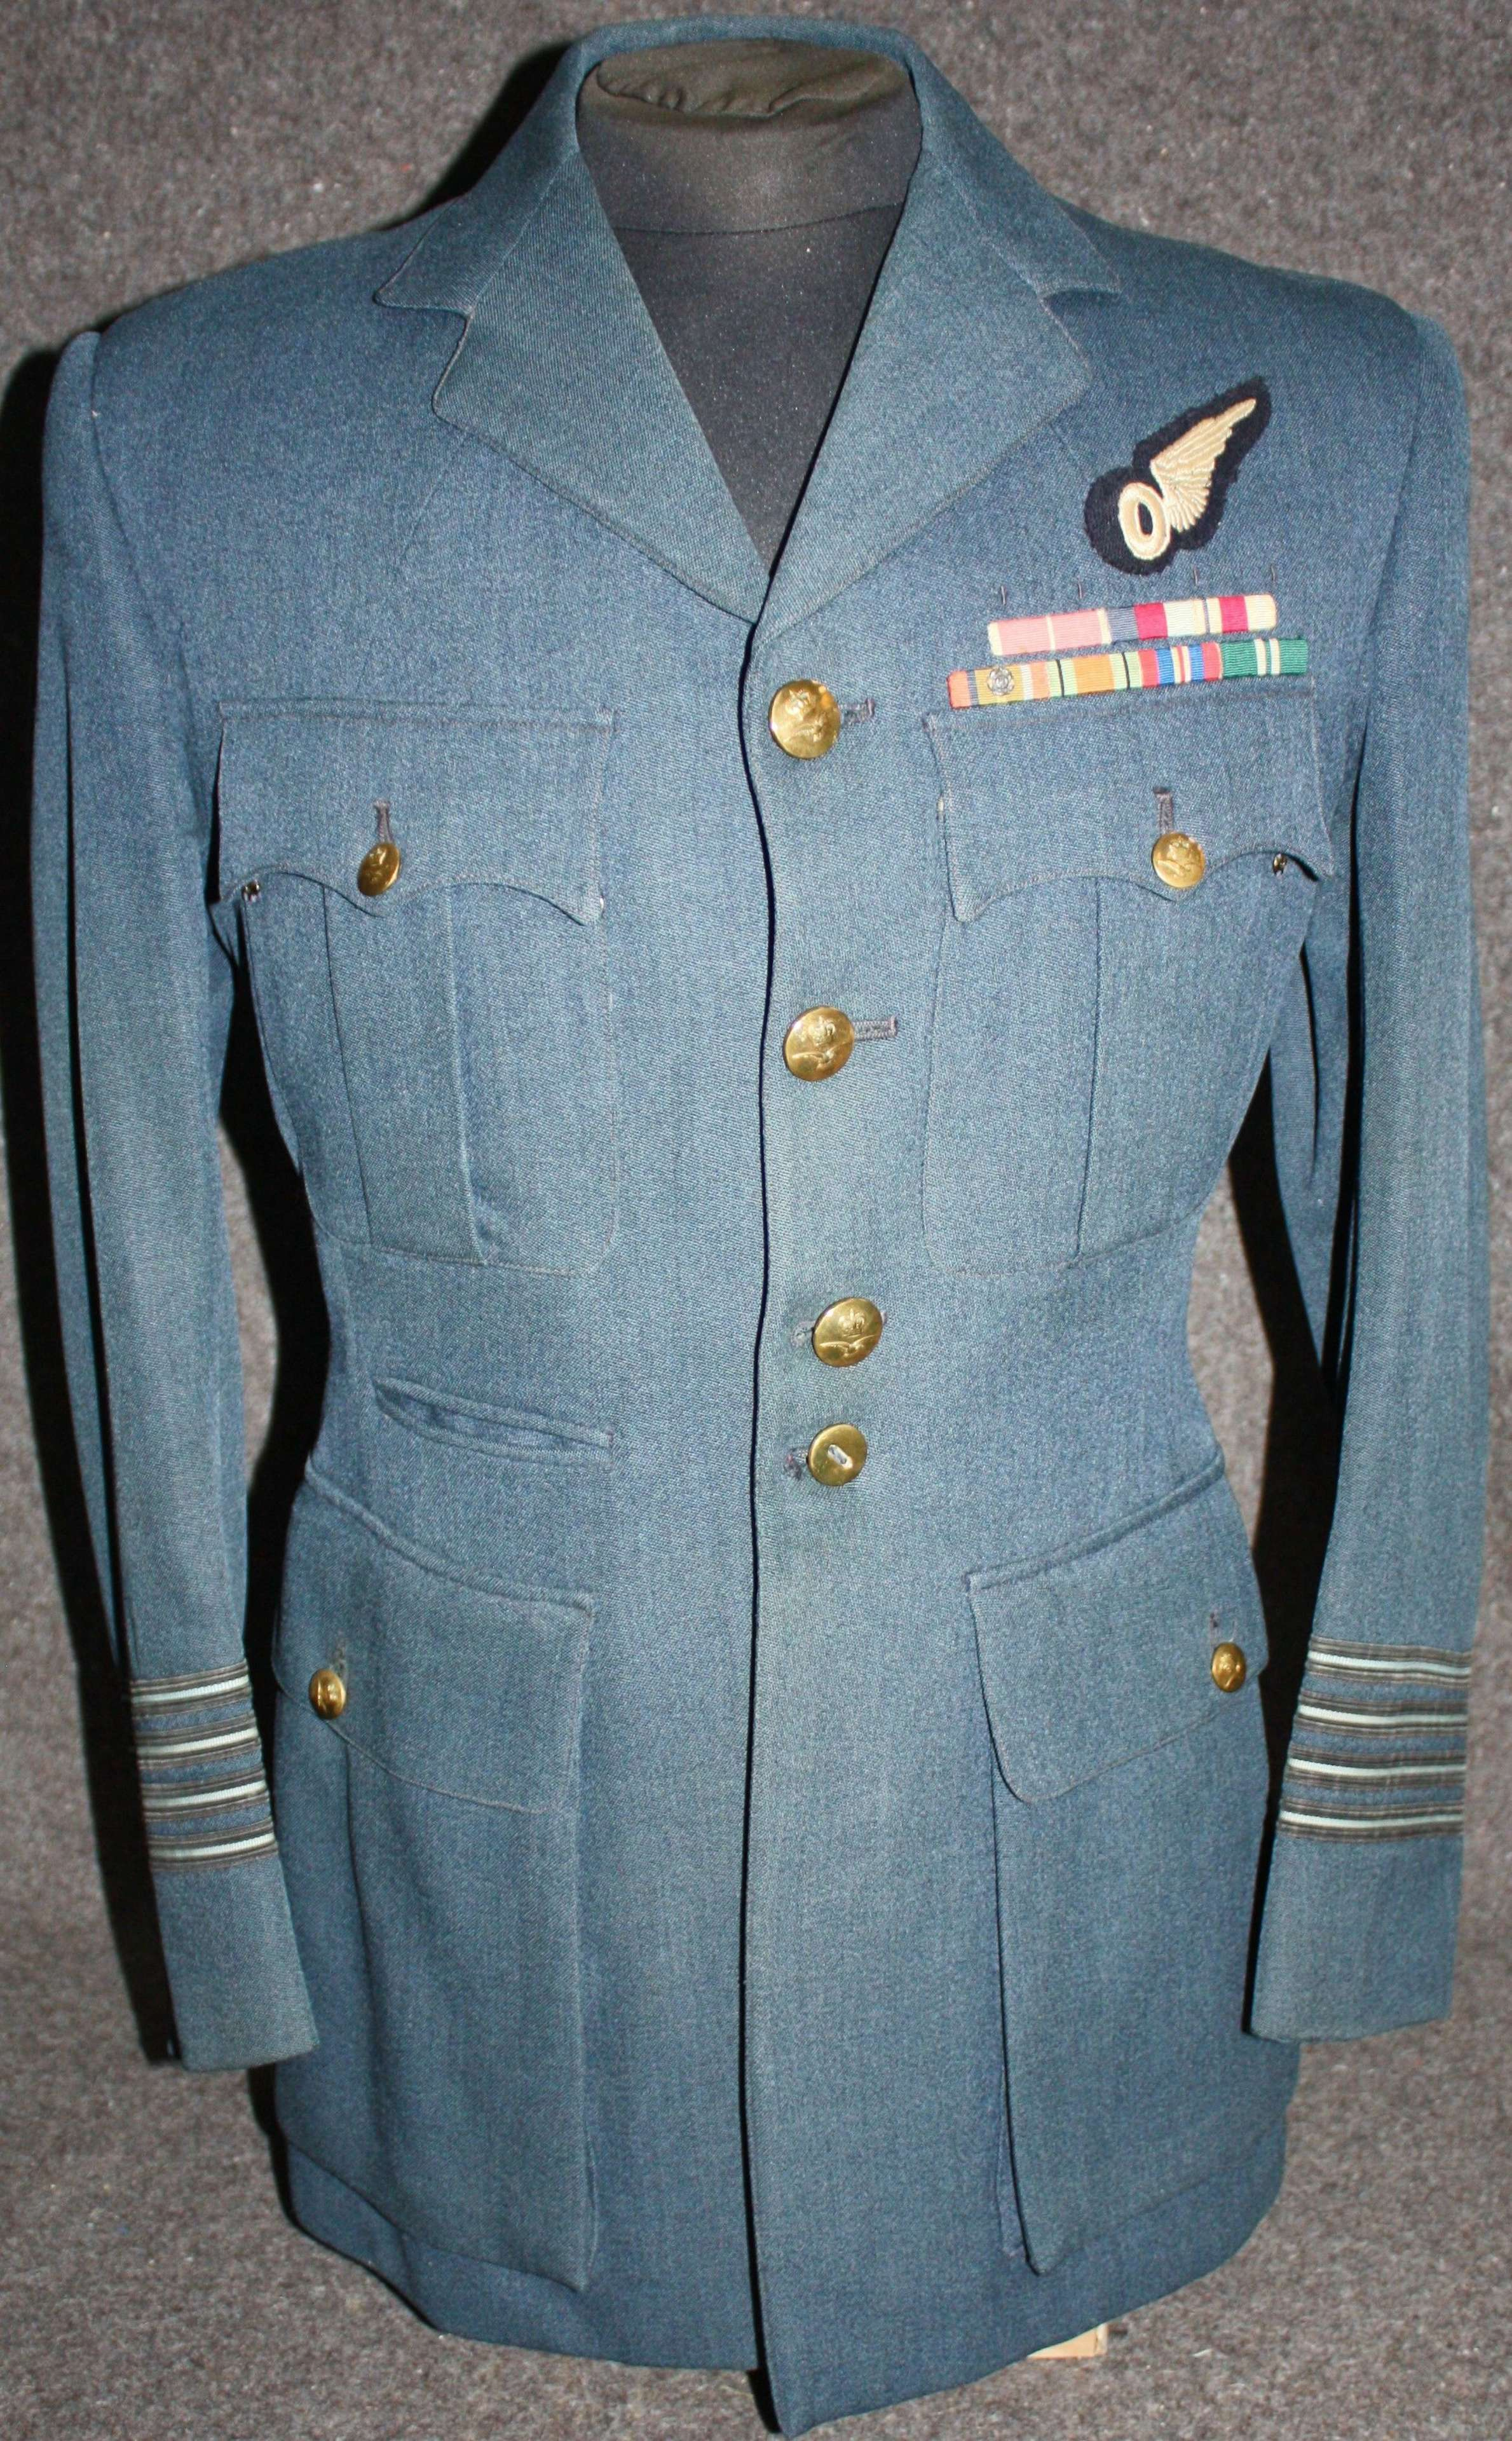 A GOOD 1950'S WING COMMANDER'S TUNIC